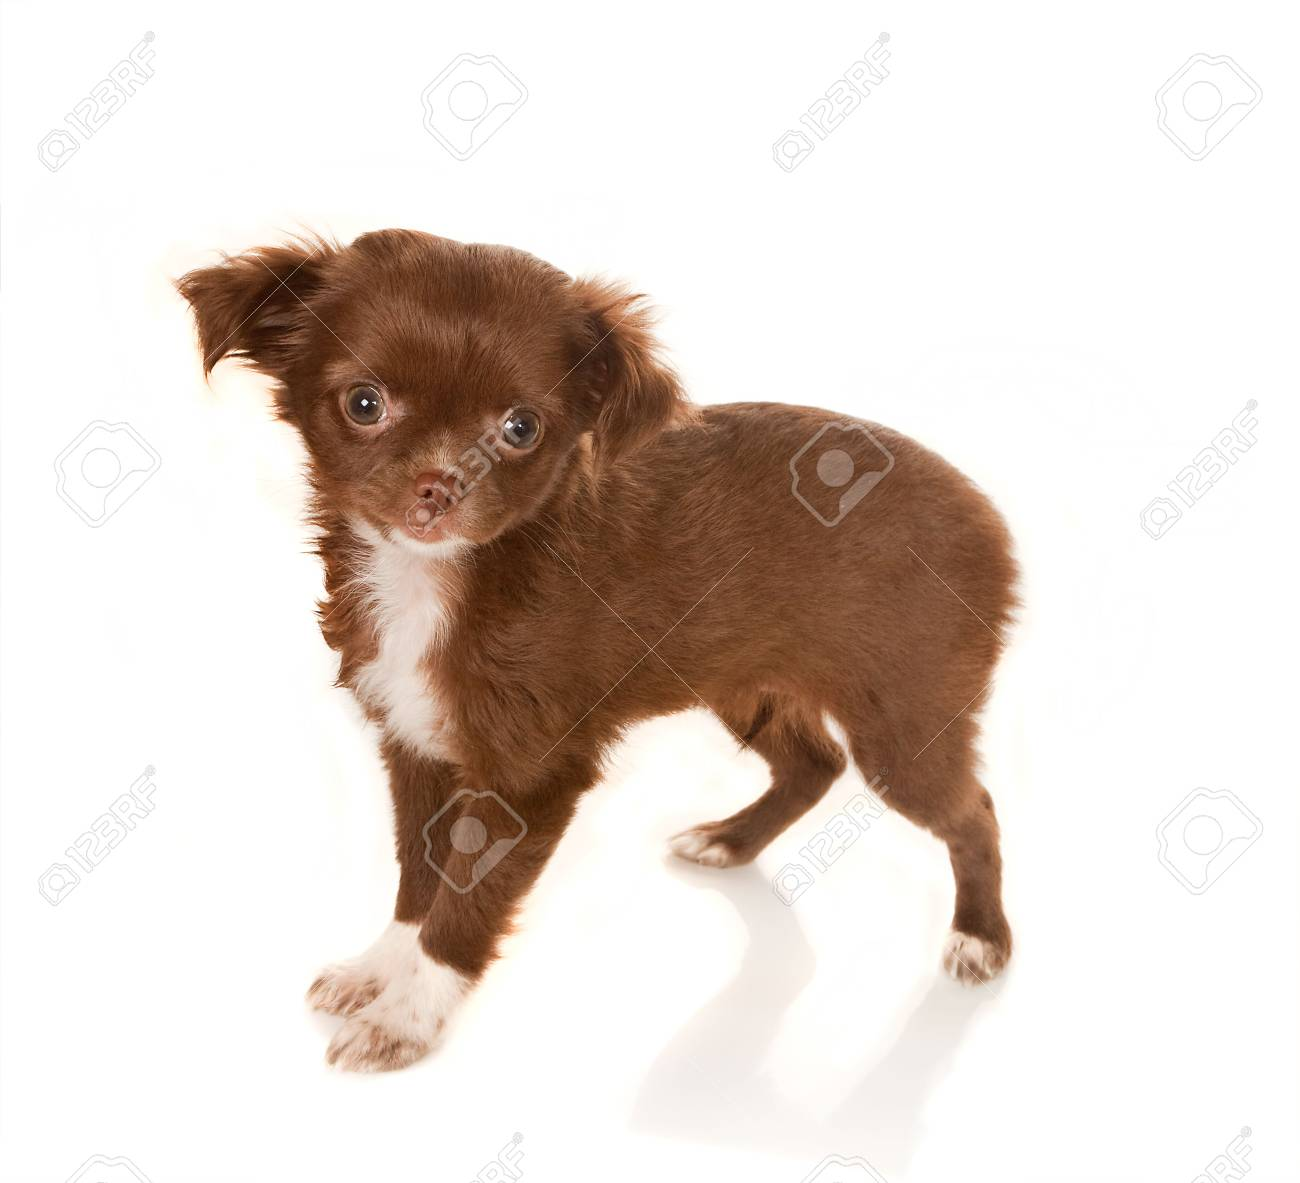 Brown longhaired Chihuahua puppy on a white background Stock Photo - 6341821